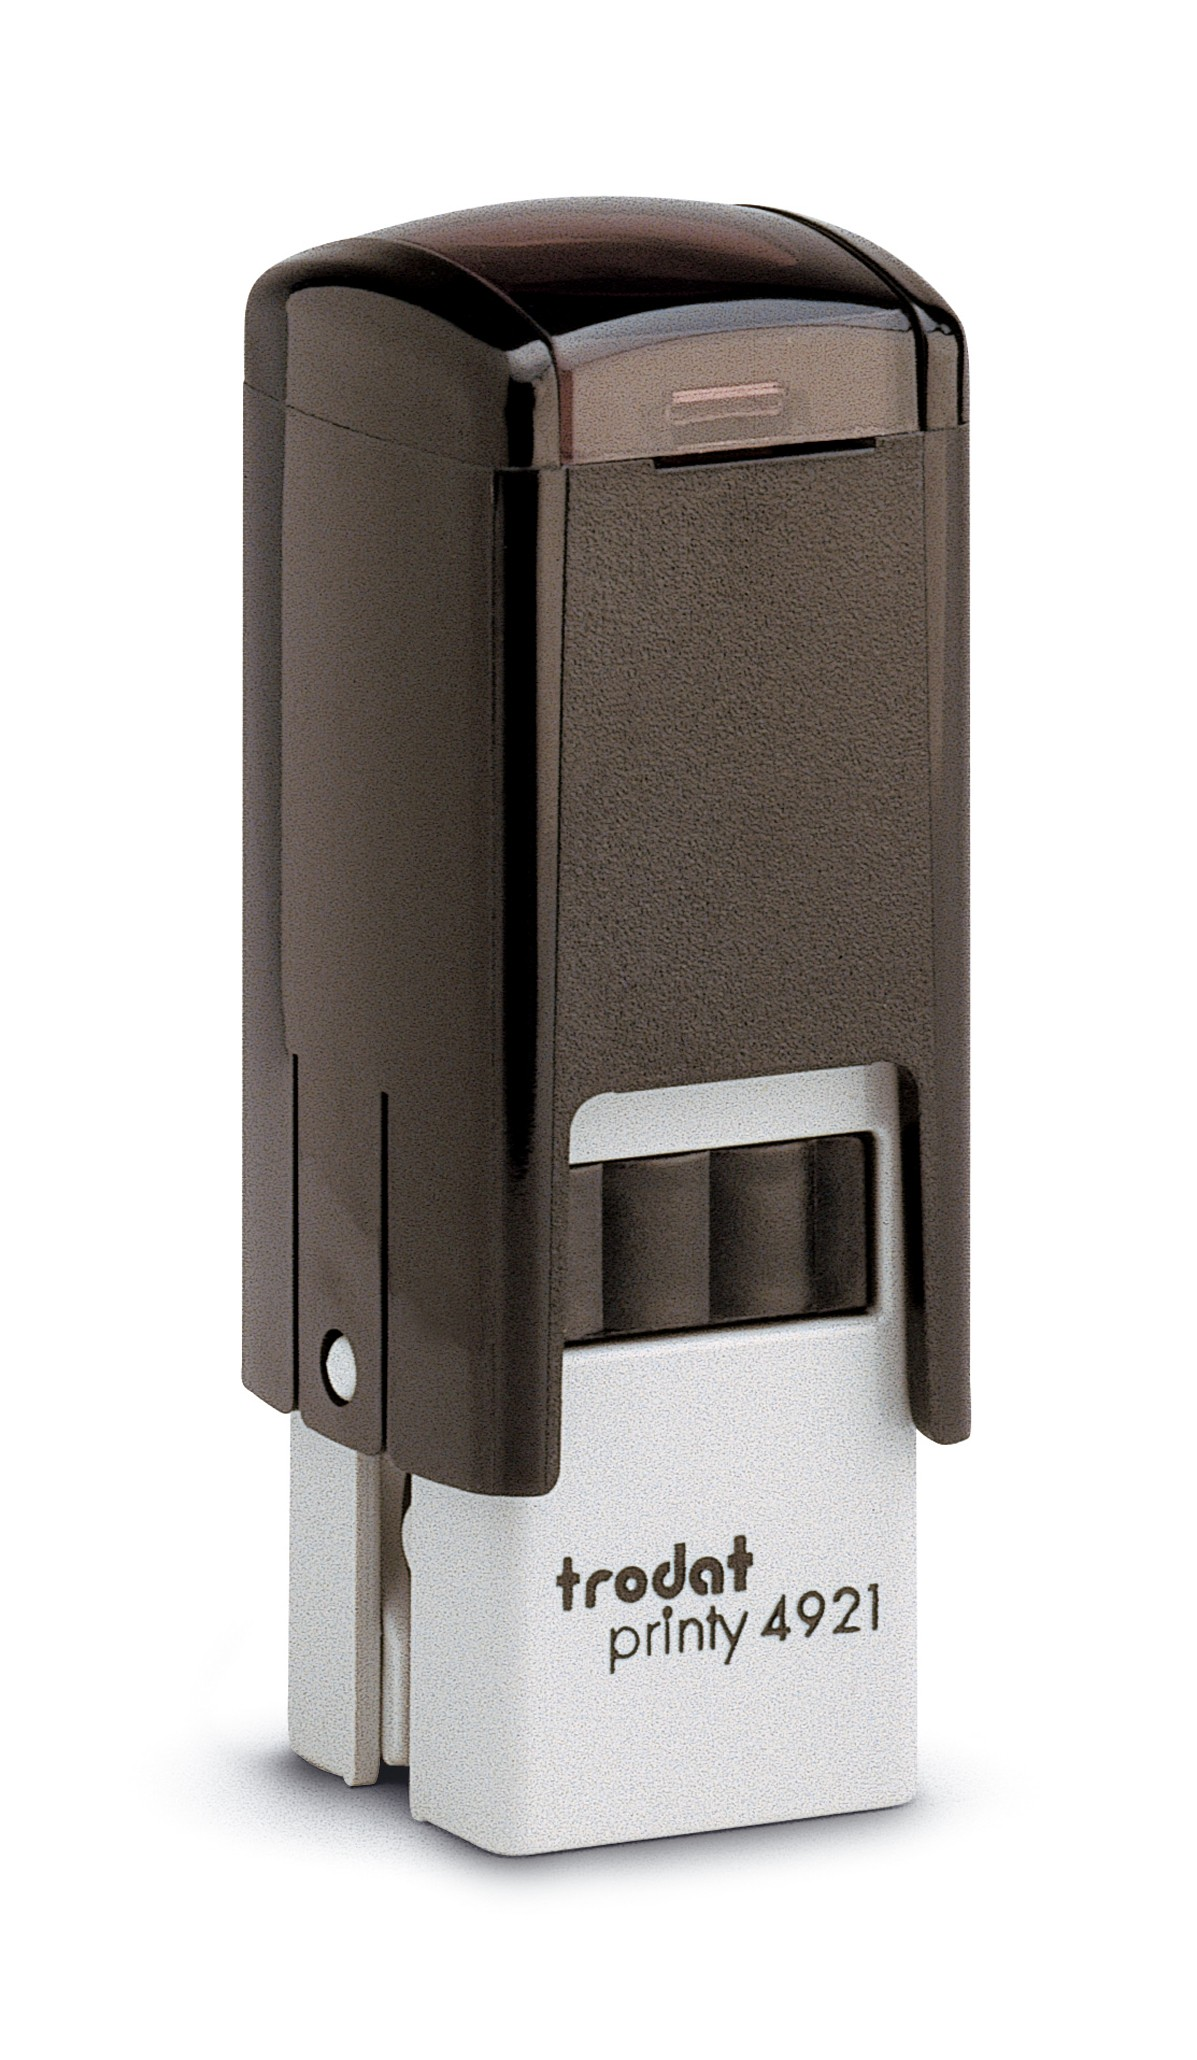 "Trodat 4921 Self-Inking Stamp (1/2"" x 1/2"")"